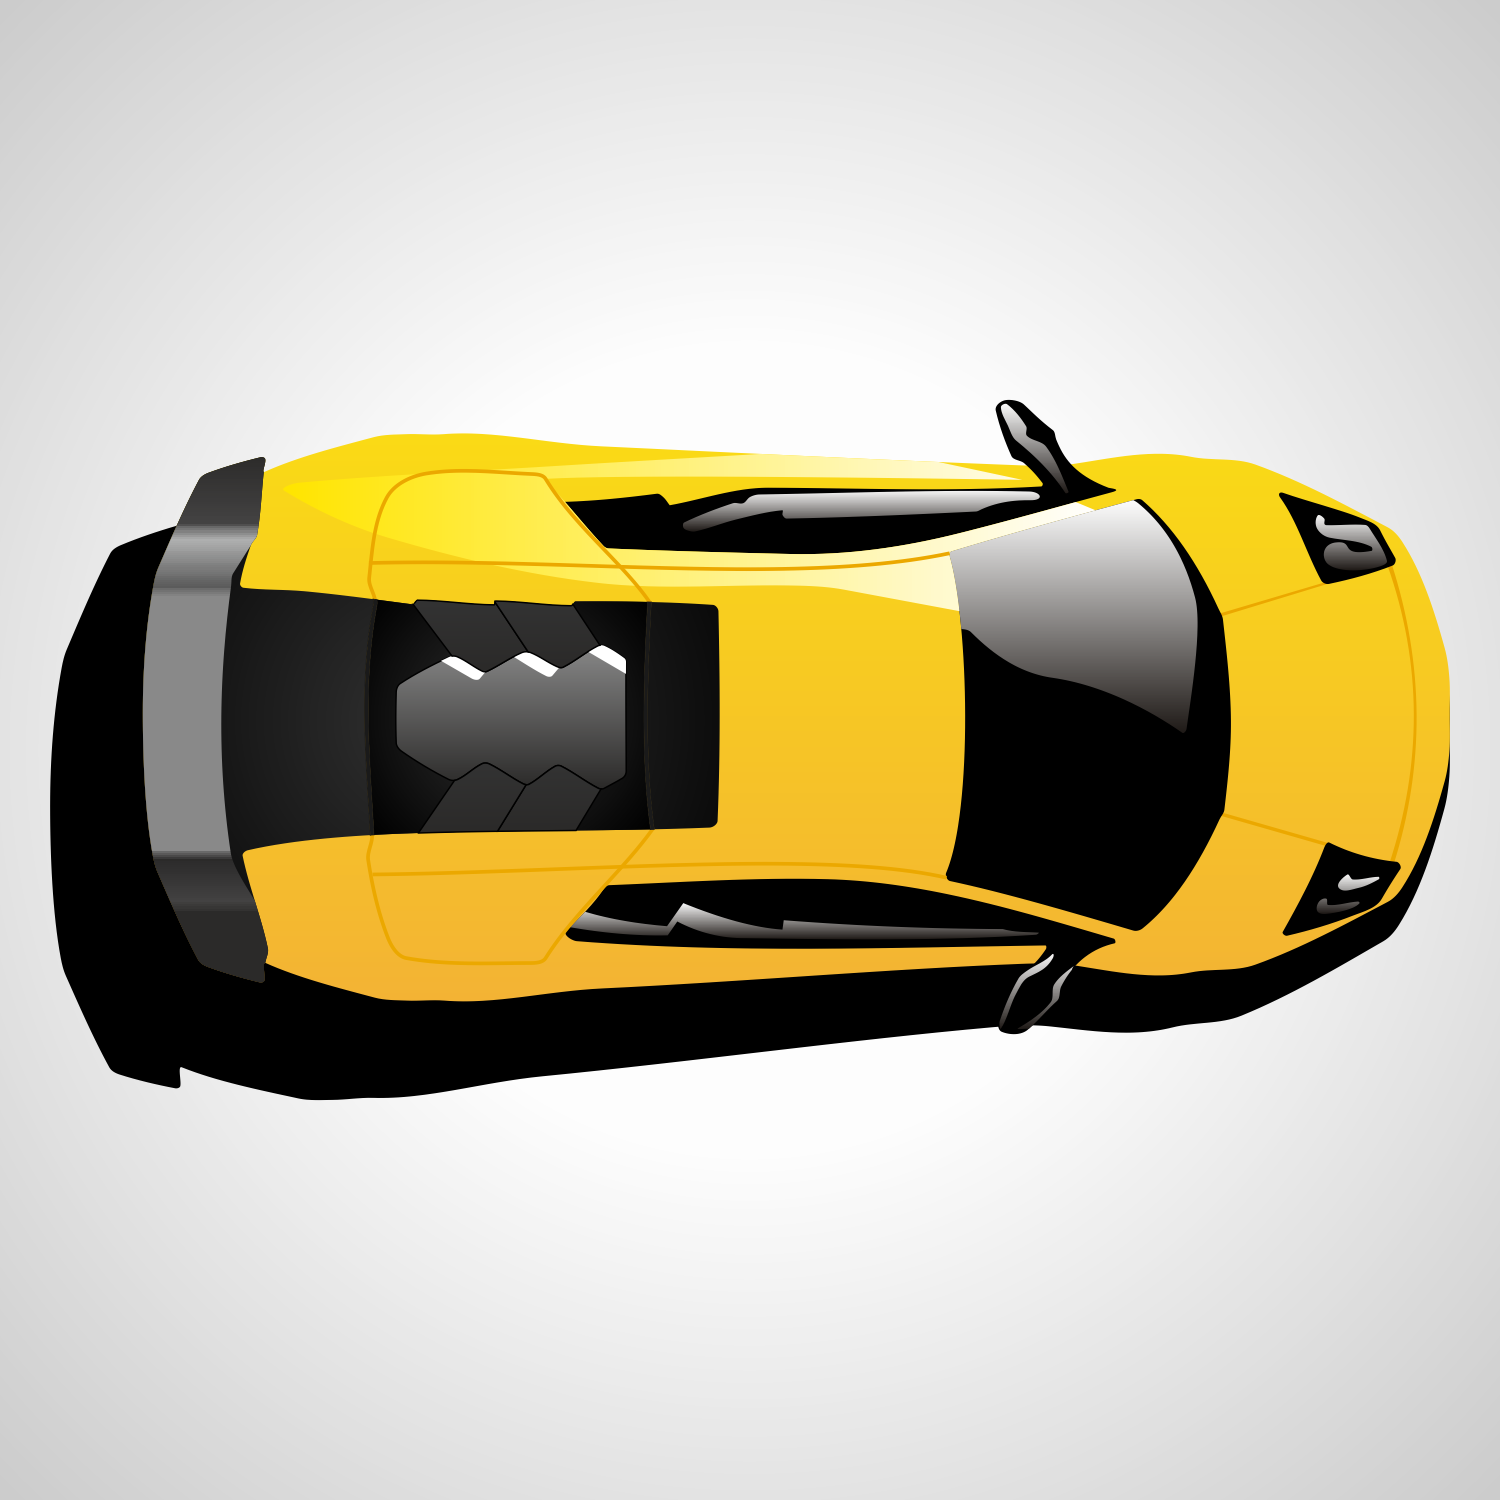 Vector For Free Use: Lamborghini Car Top View